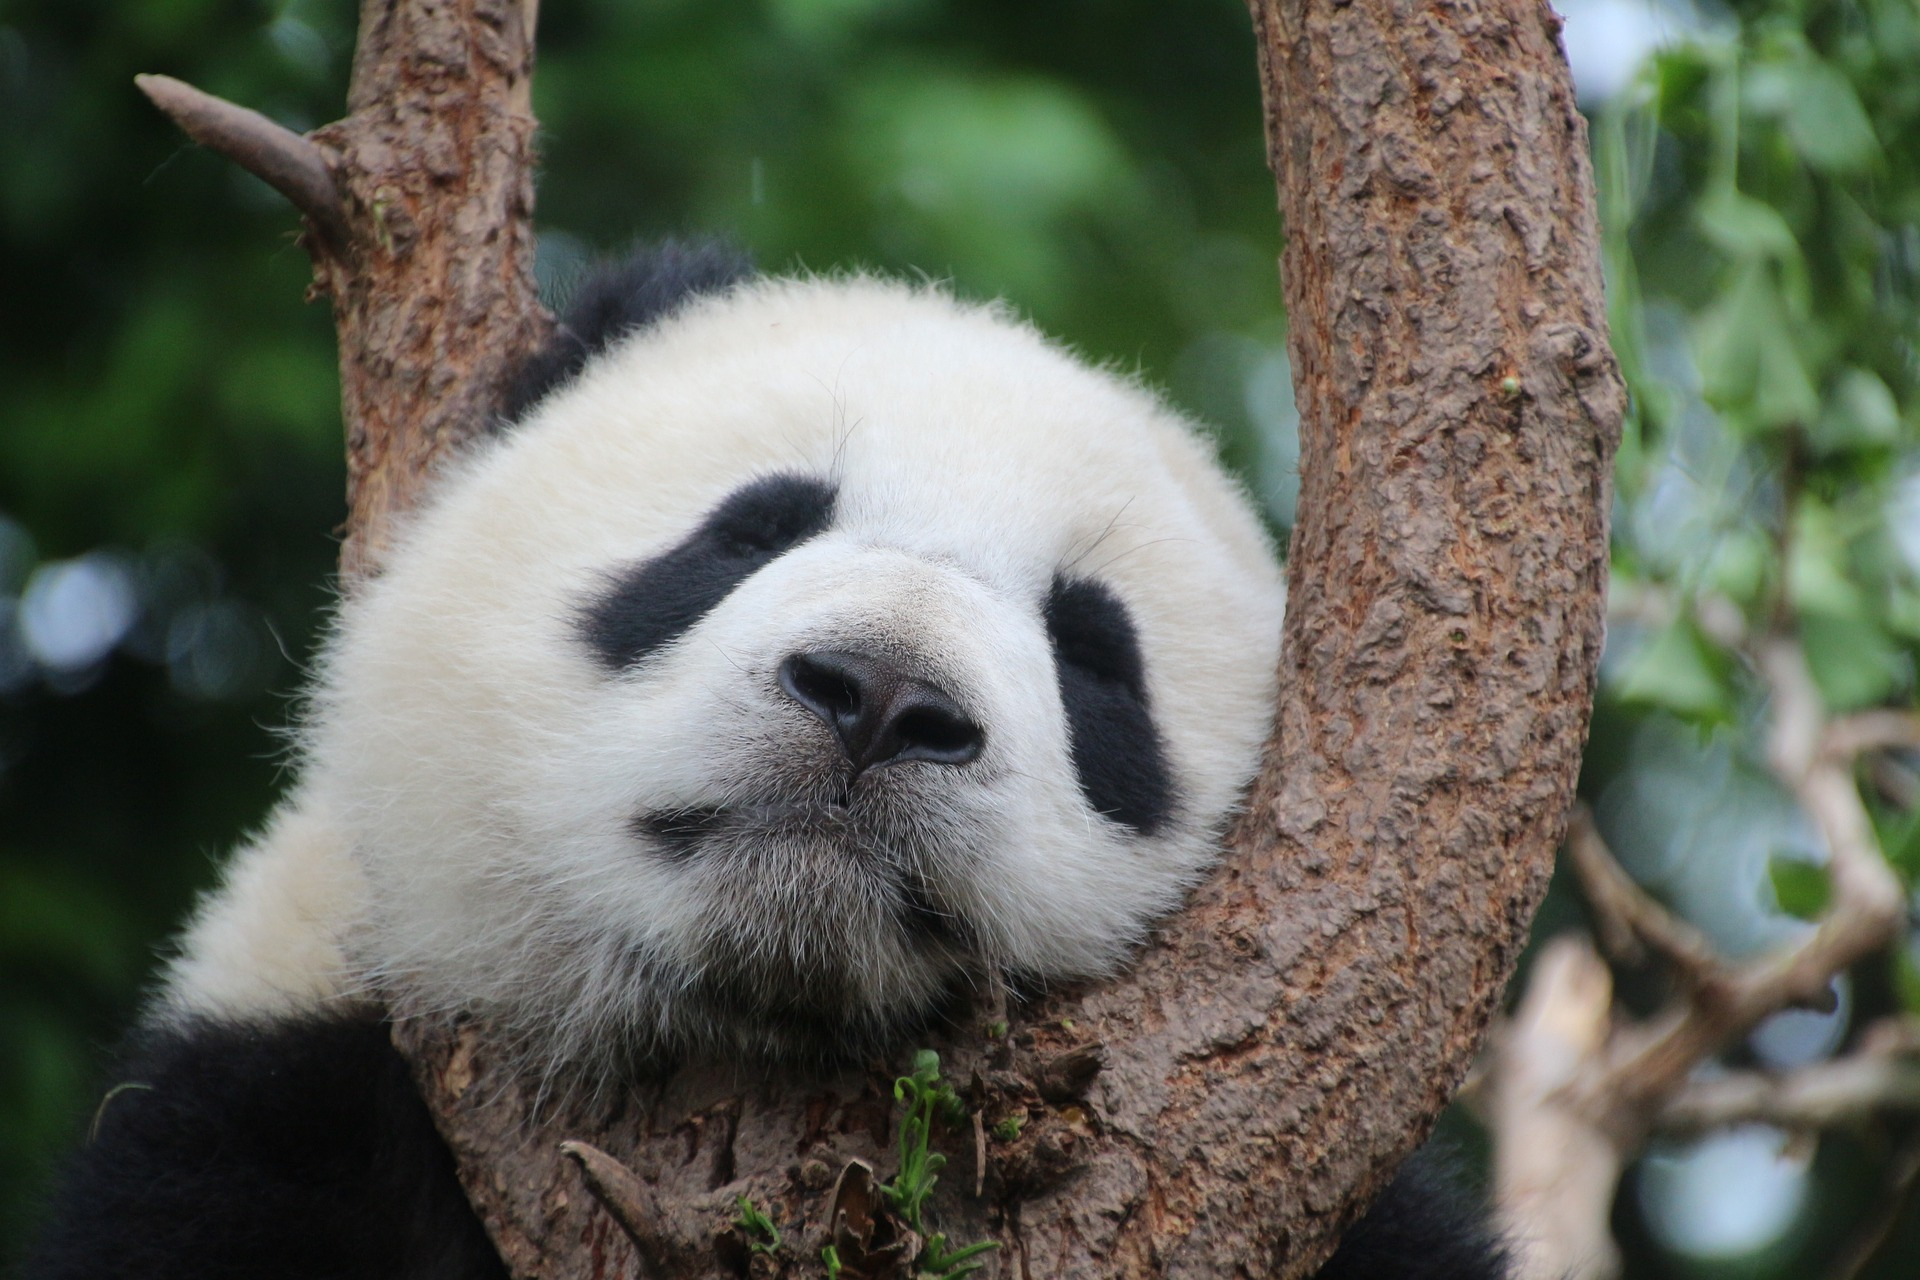 You can see giant pandas in China.